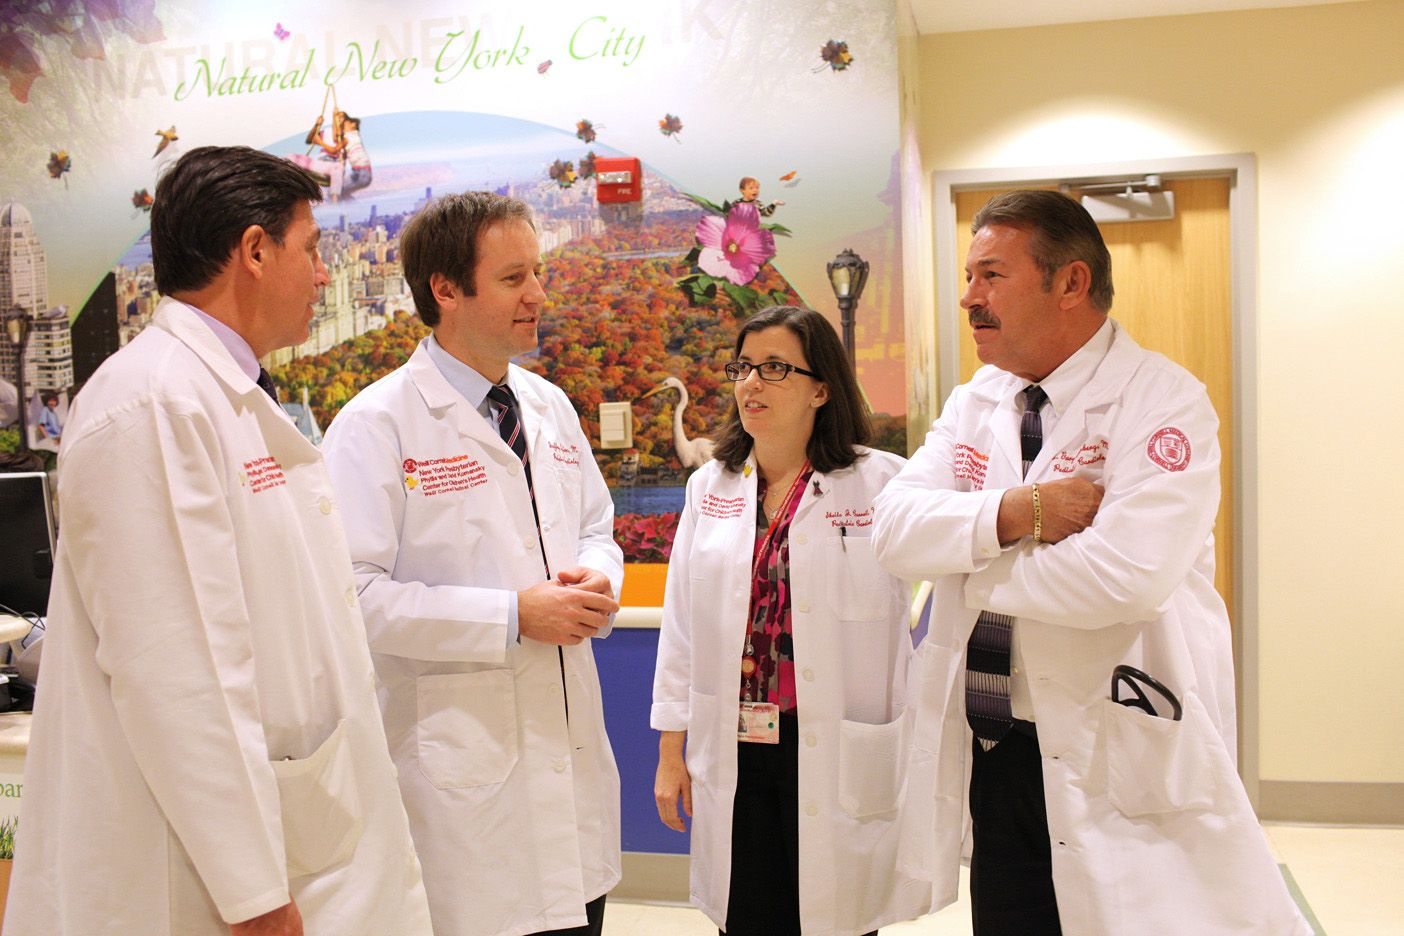 Pediatric cardiologists at Weill Cornell Medicine